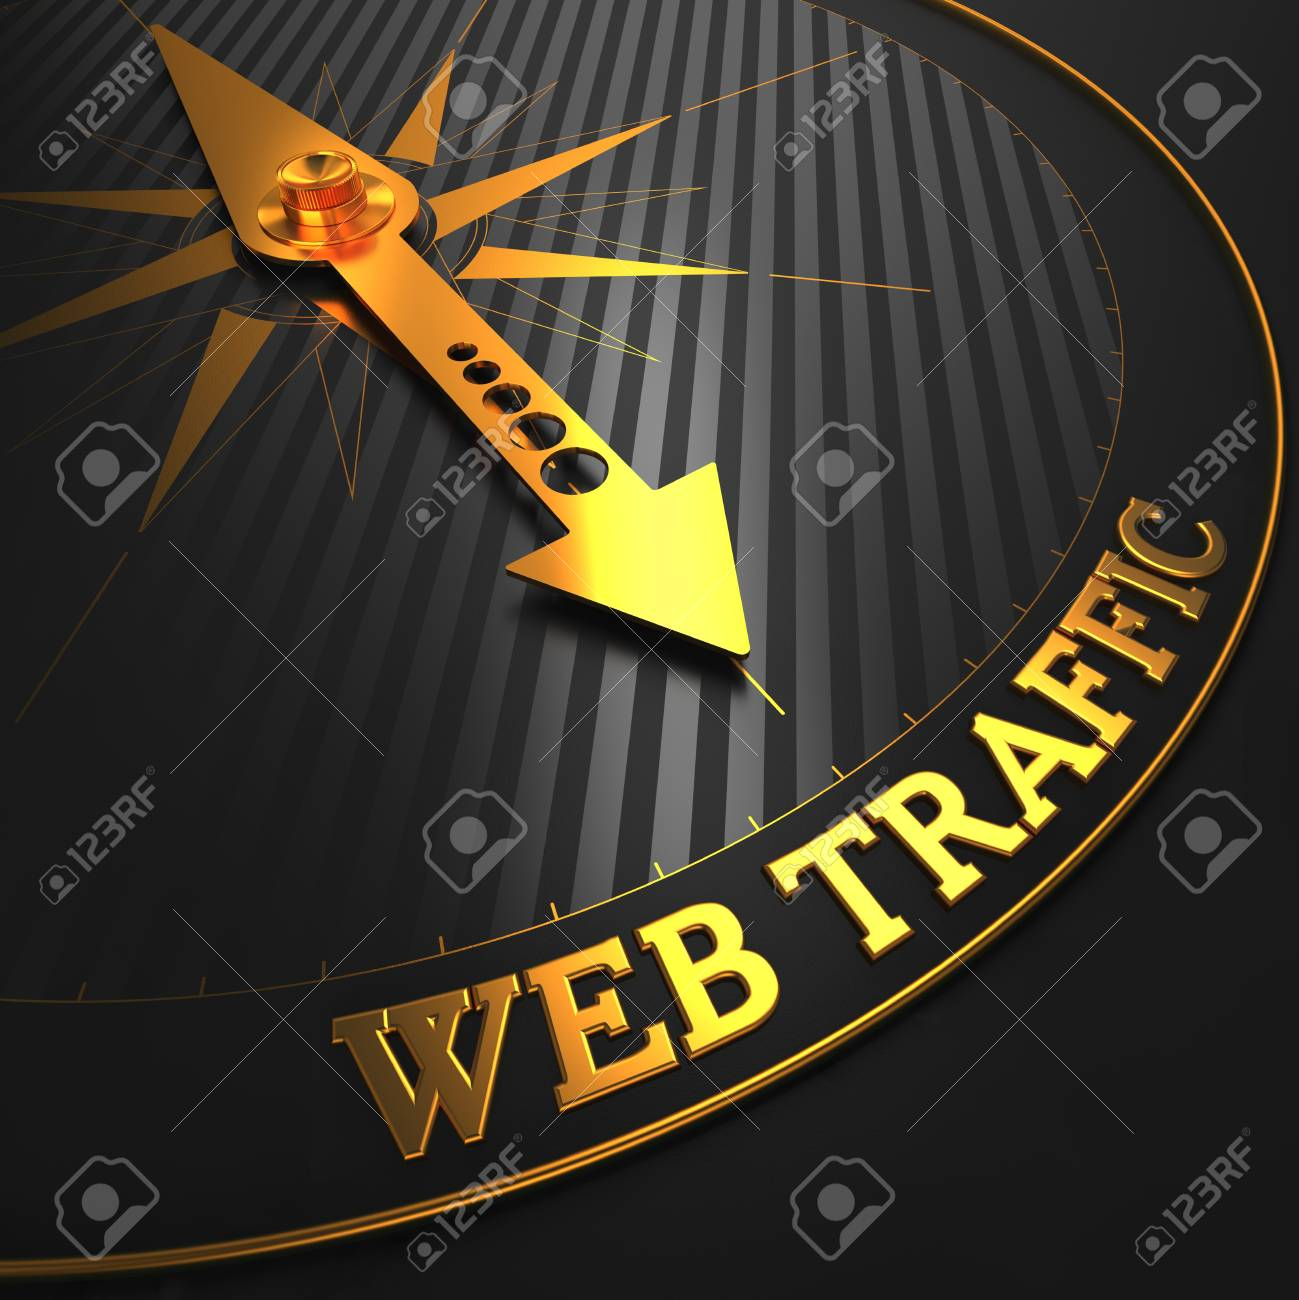 Web Traffic - Golden Compass Needle on a Black Field Pointing. Stock Photo - 26339695